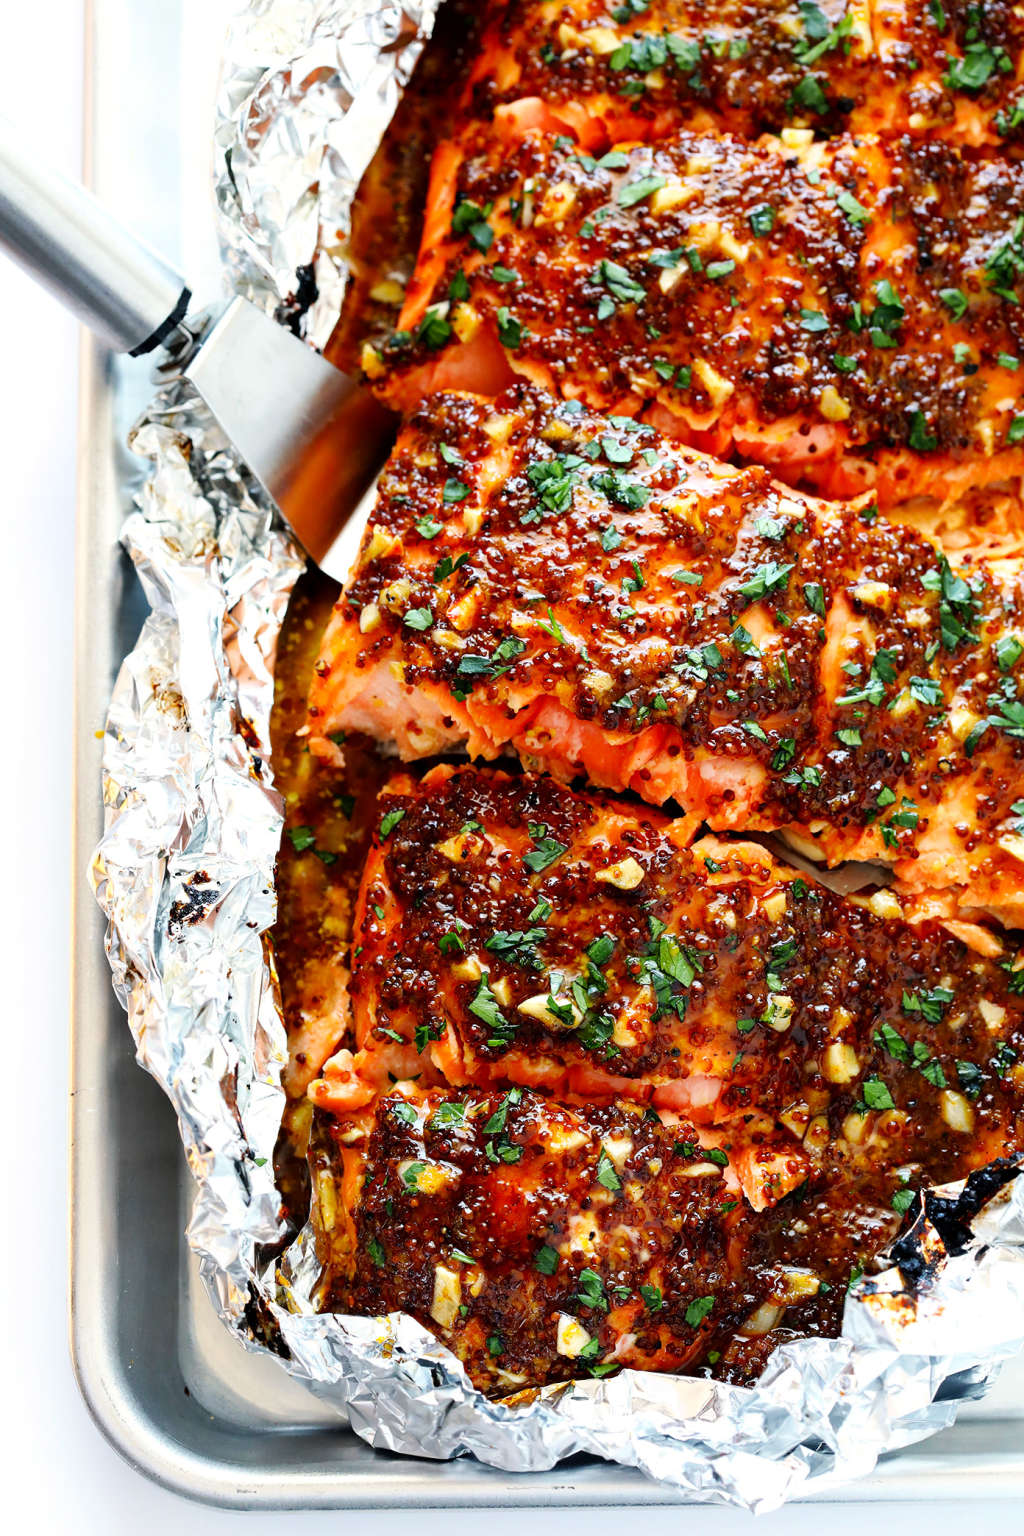 Cook Your Salmon in Foil for Tender, Flaky Results